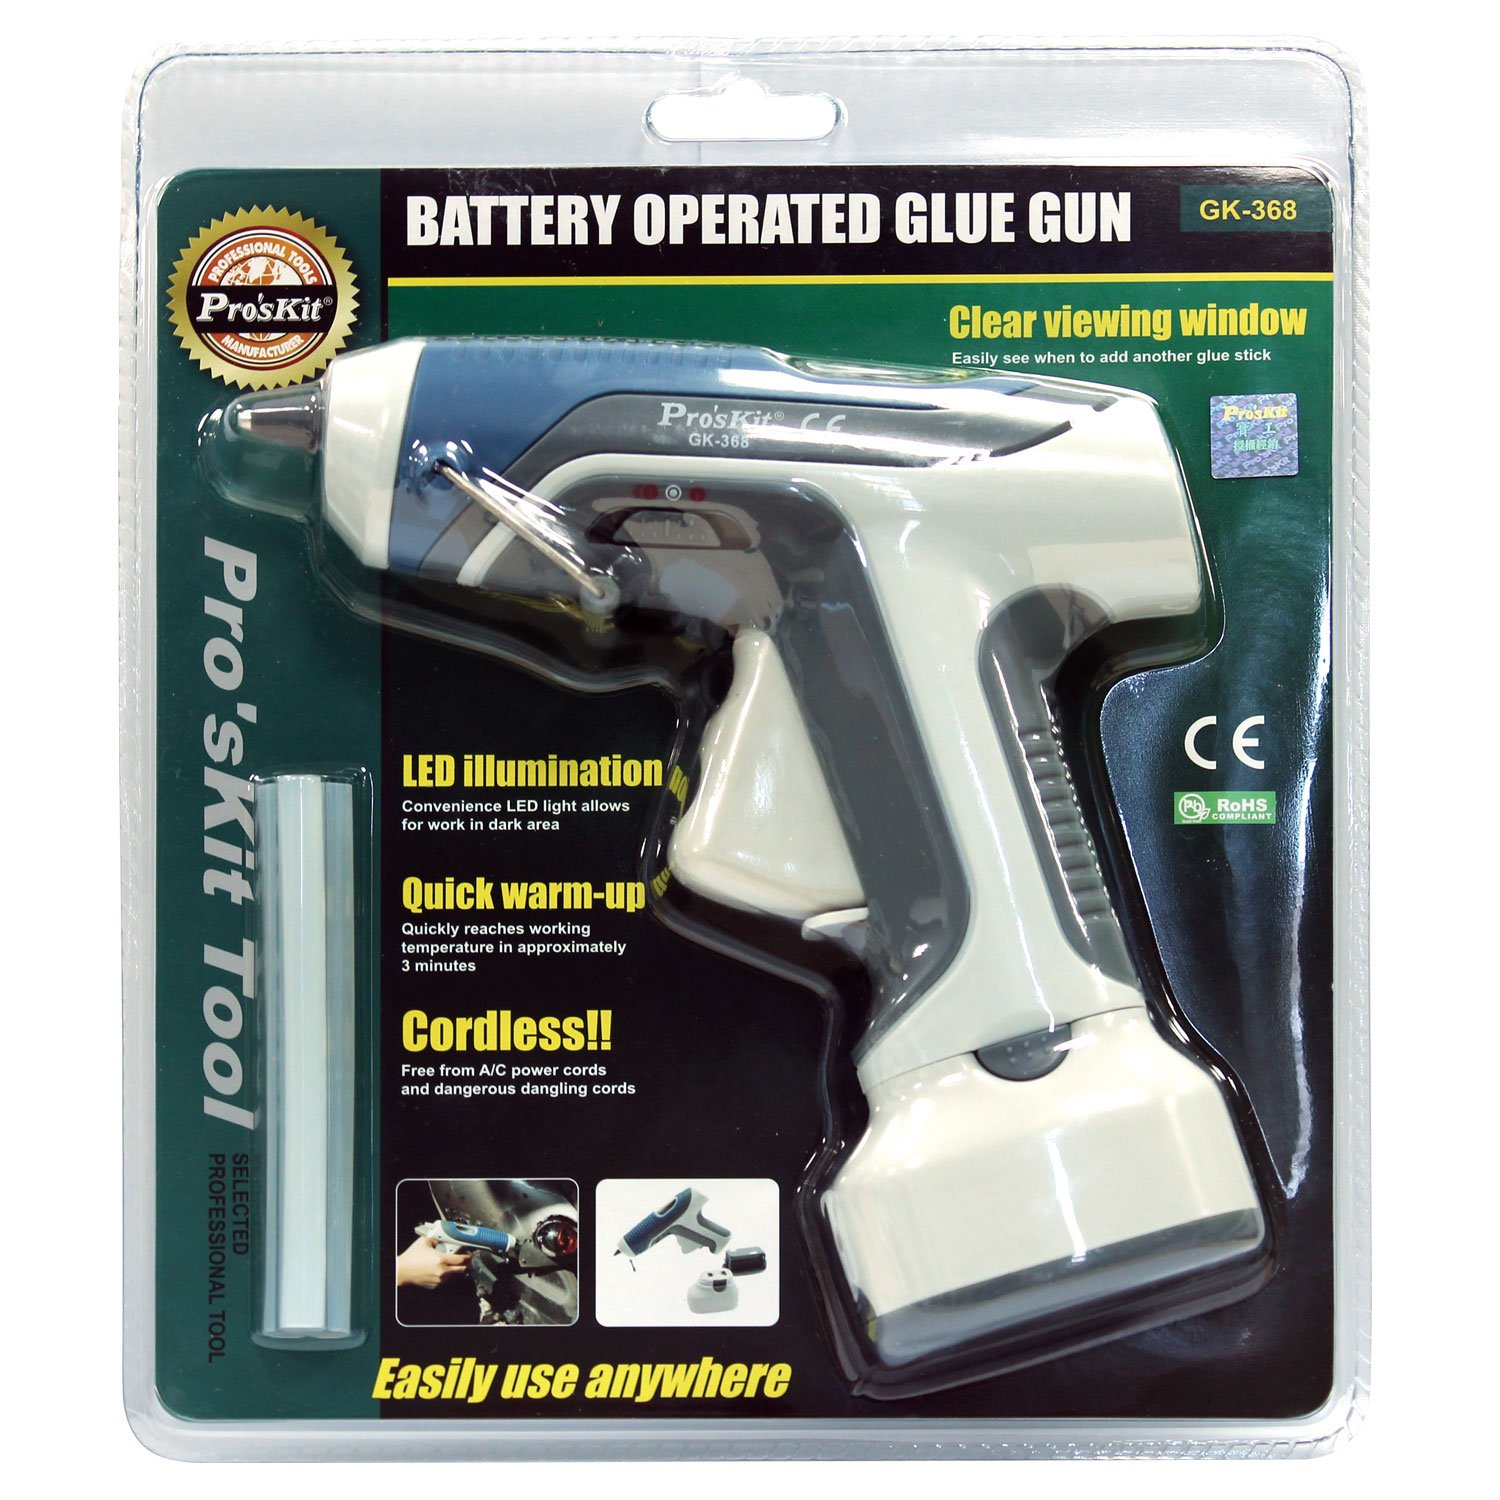 Pro'sKit GK-368 Battery Operated Glue Gun